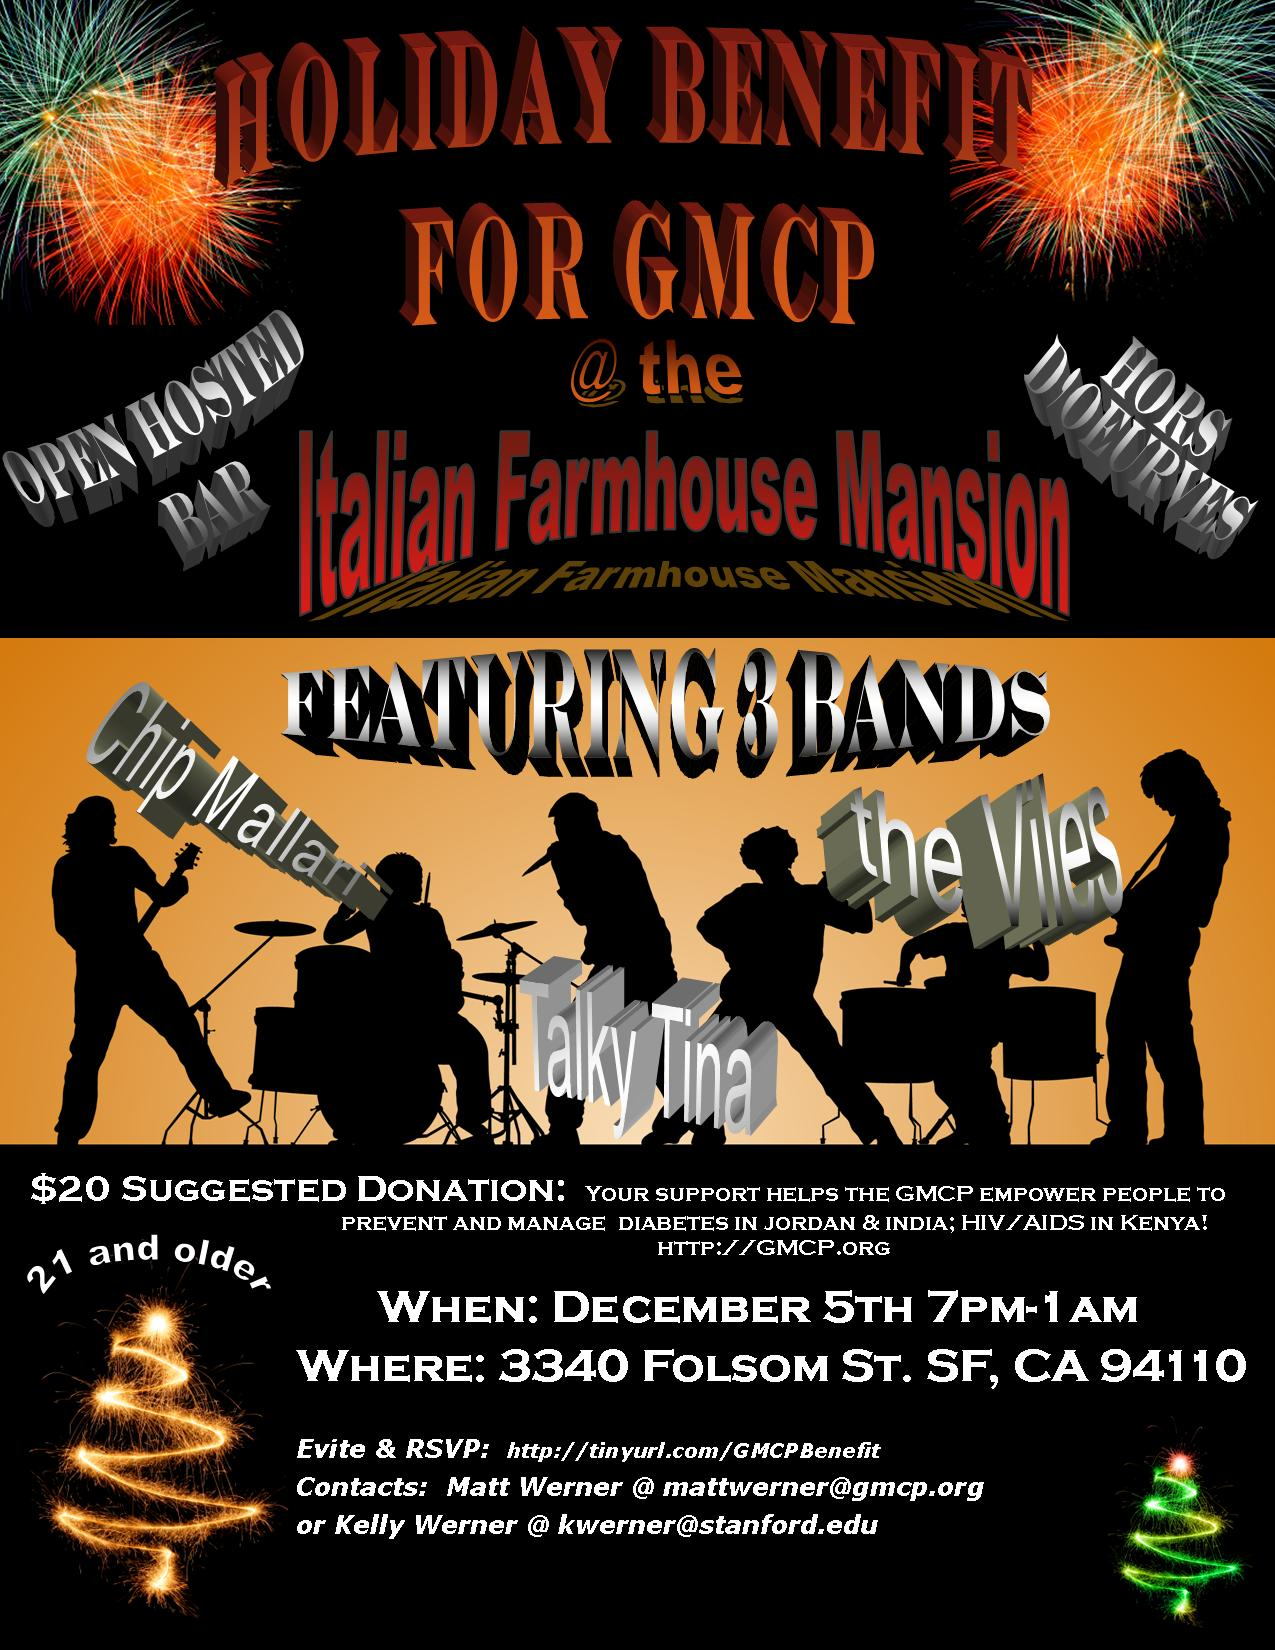 GMCP Holiday Benefit Party invitation